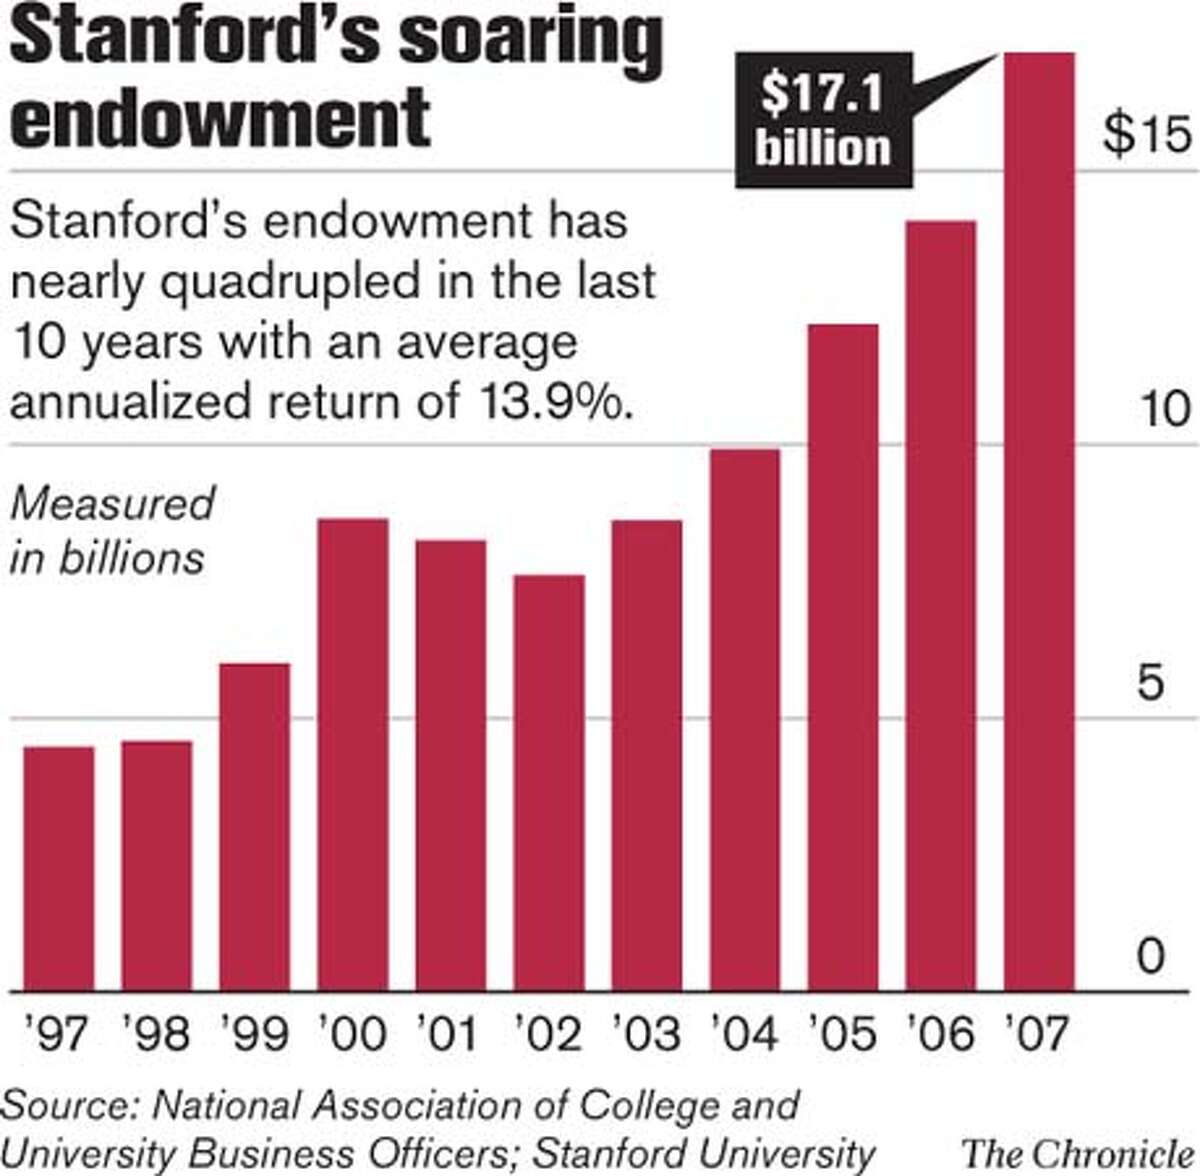 Stanford's soaring endowment. Chronicle Graphic